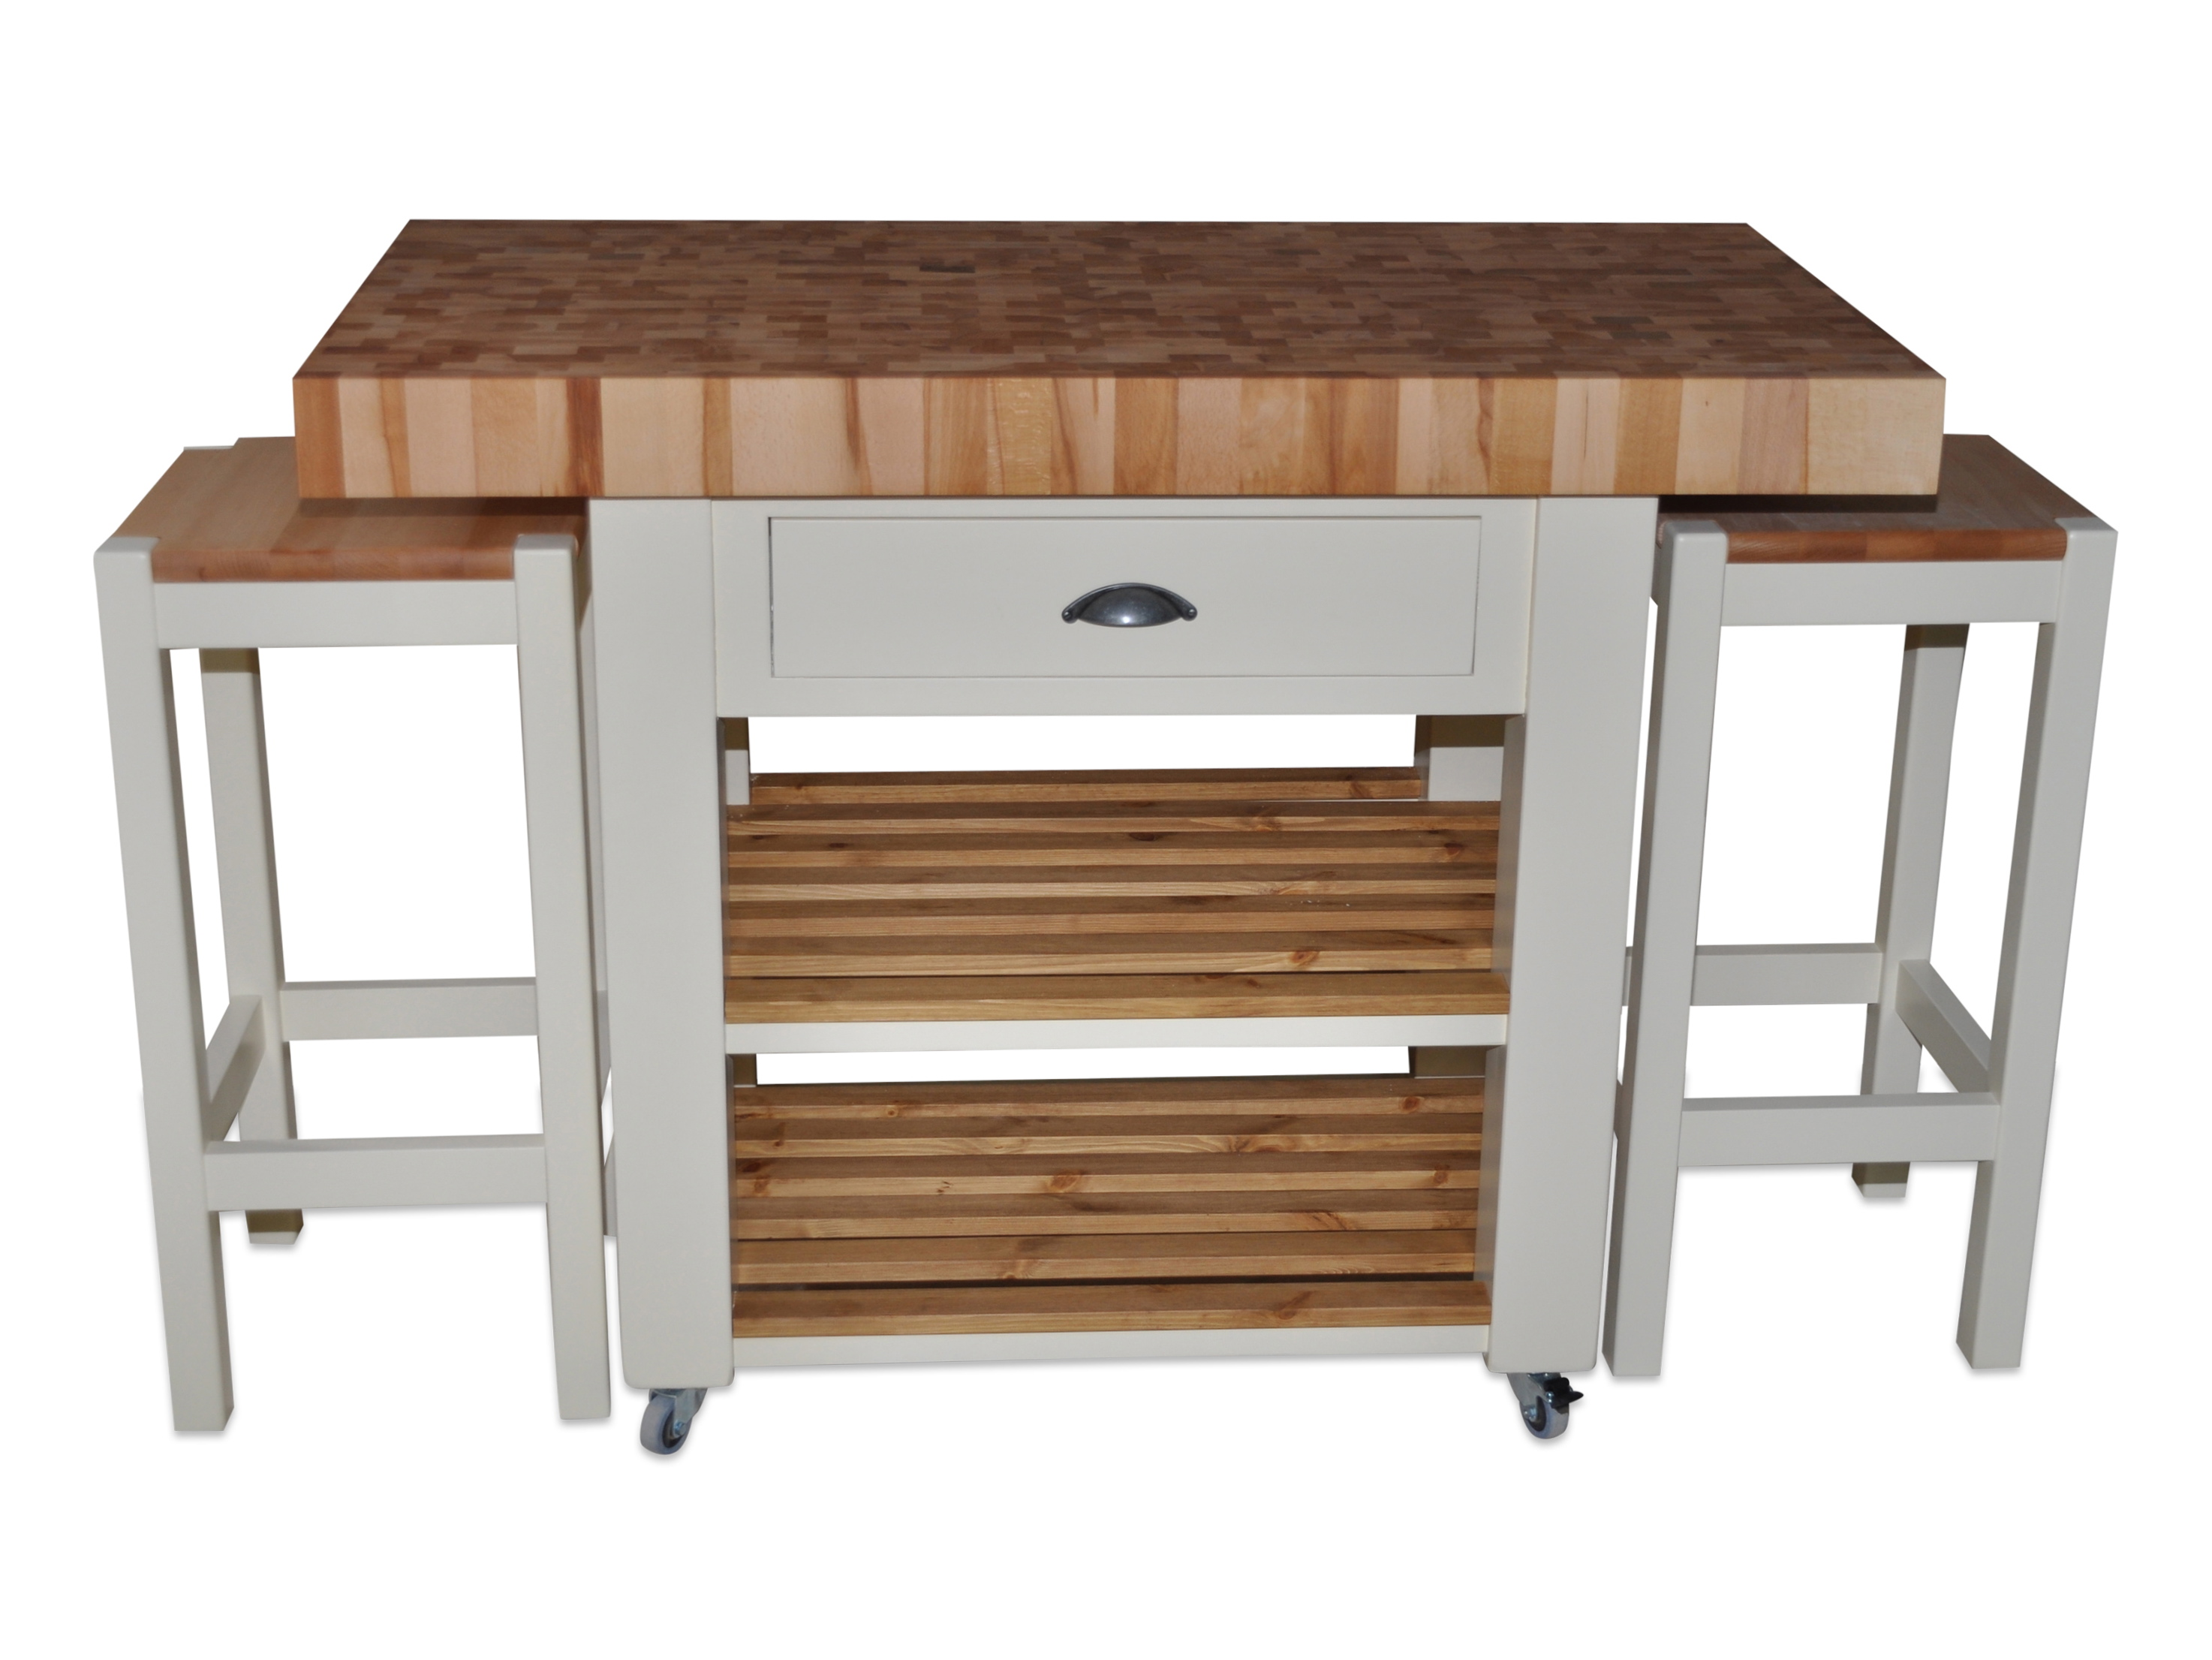 Countryinteriors Top Quality Butchers Block Islands Handmade To Your Requirements